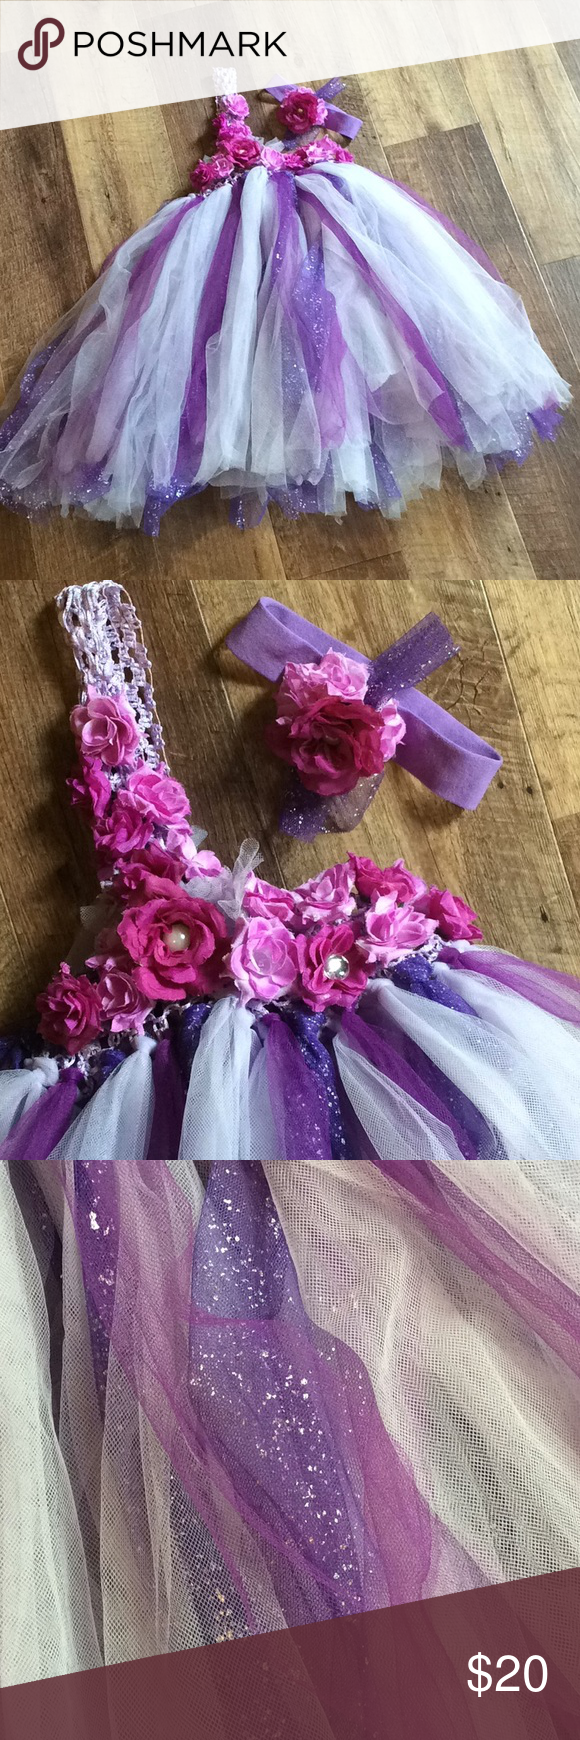 Empire Waist One Shoulder Floral Tulle Tutu Dress SIZE IS A GUESS - approximately 2T-3T Lavender waffle elastic bust with flowers. Various shades of purple in tulle skirt with some shimmer strands.  Matching headband included.  Used as photography prop/outfit.   0622 Dresses Formal